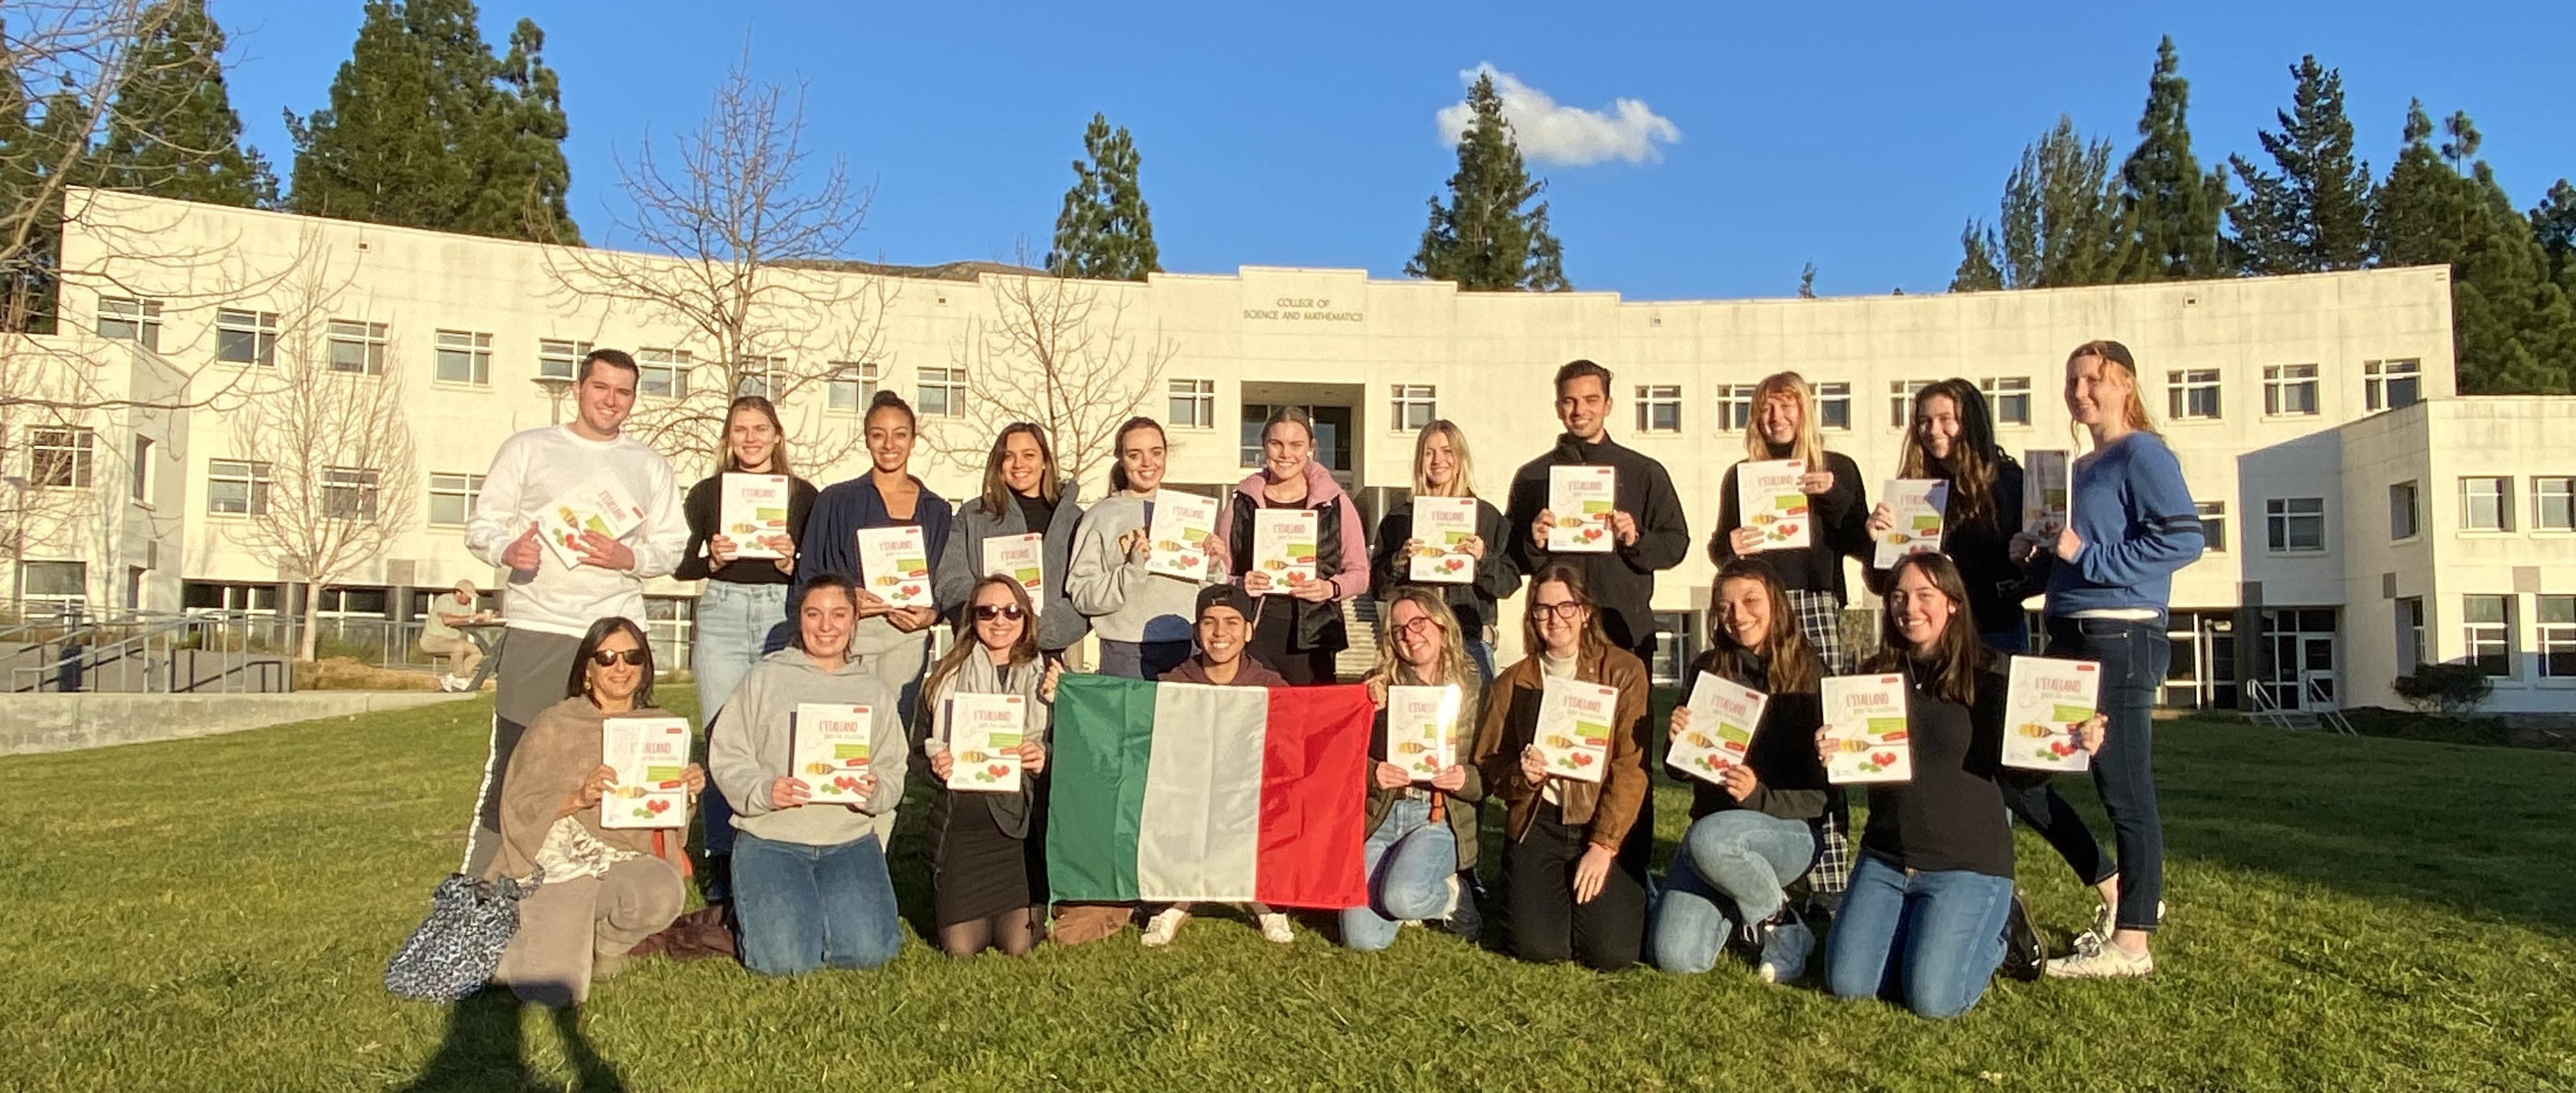 Italian 202 students pose with their textbooks